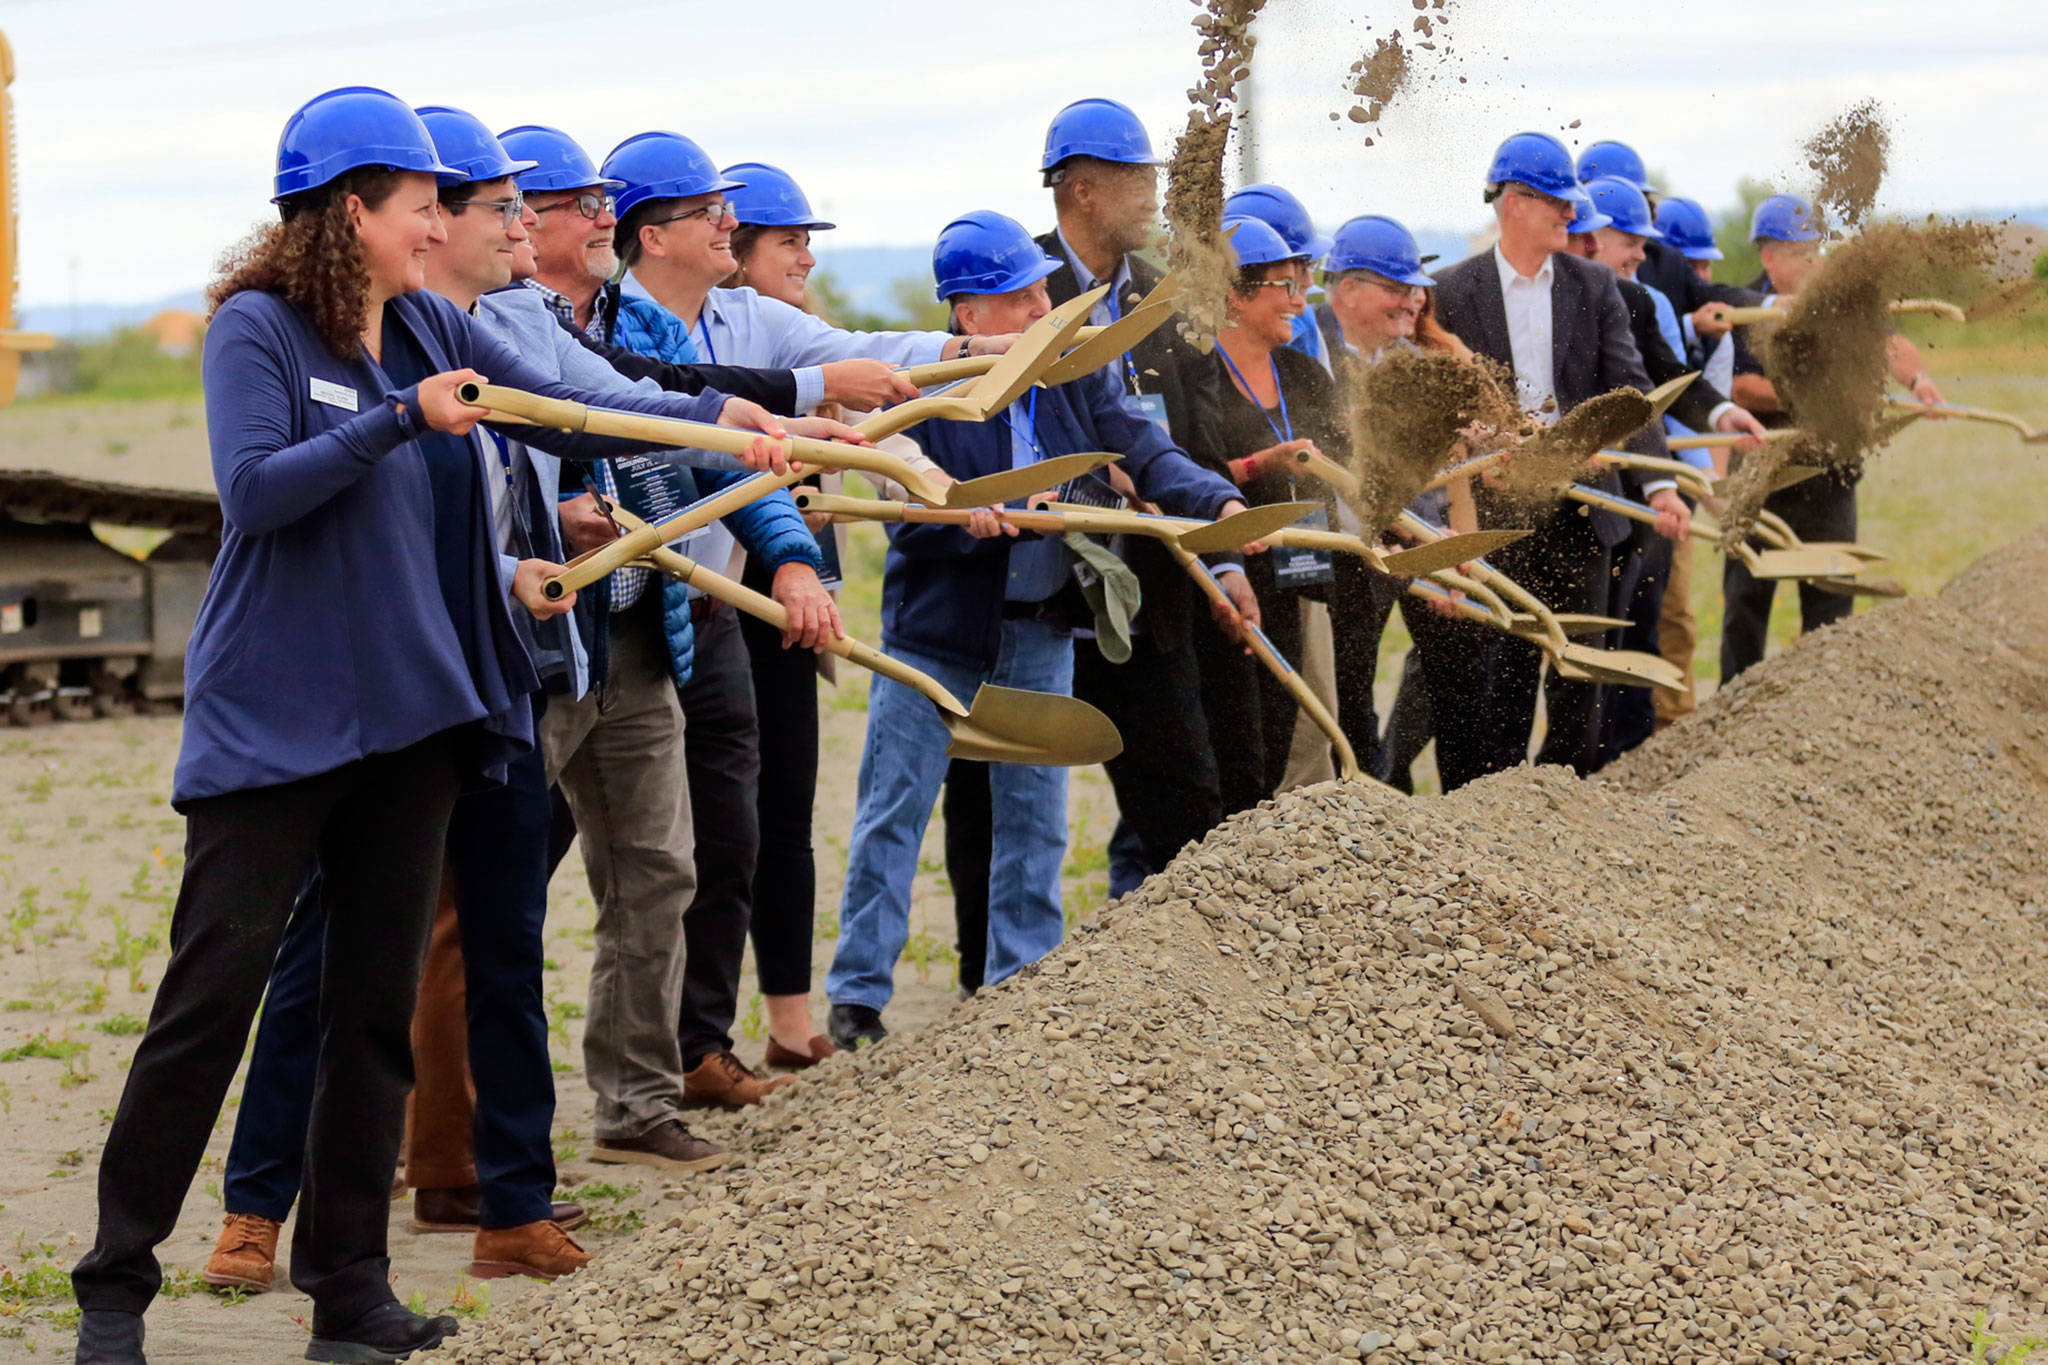 Community leaders and officials break ground at the Port of Everett's Norton Terminal, on the former Kimberly-Clark mill site, Thursday morning in Everett. (Kevin Clark / The Herald)